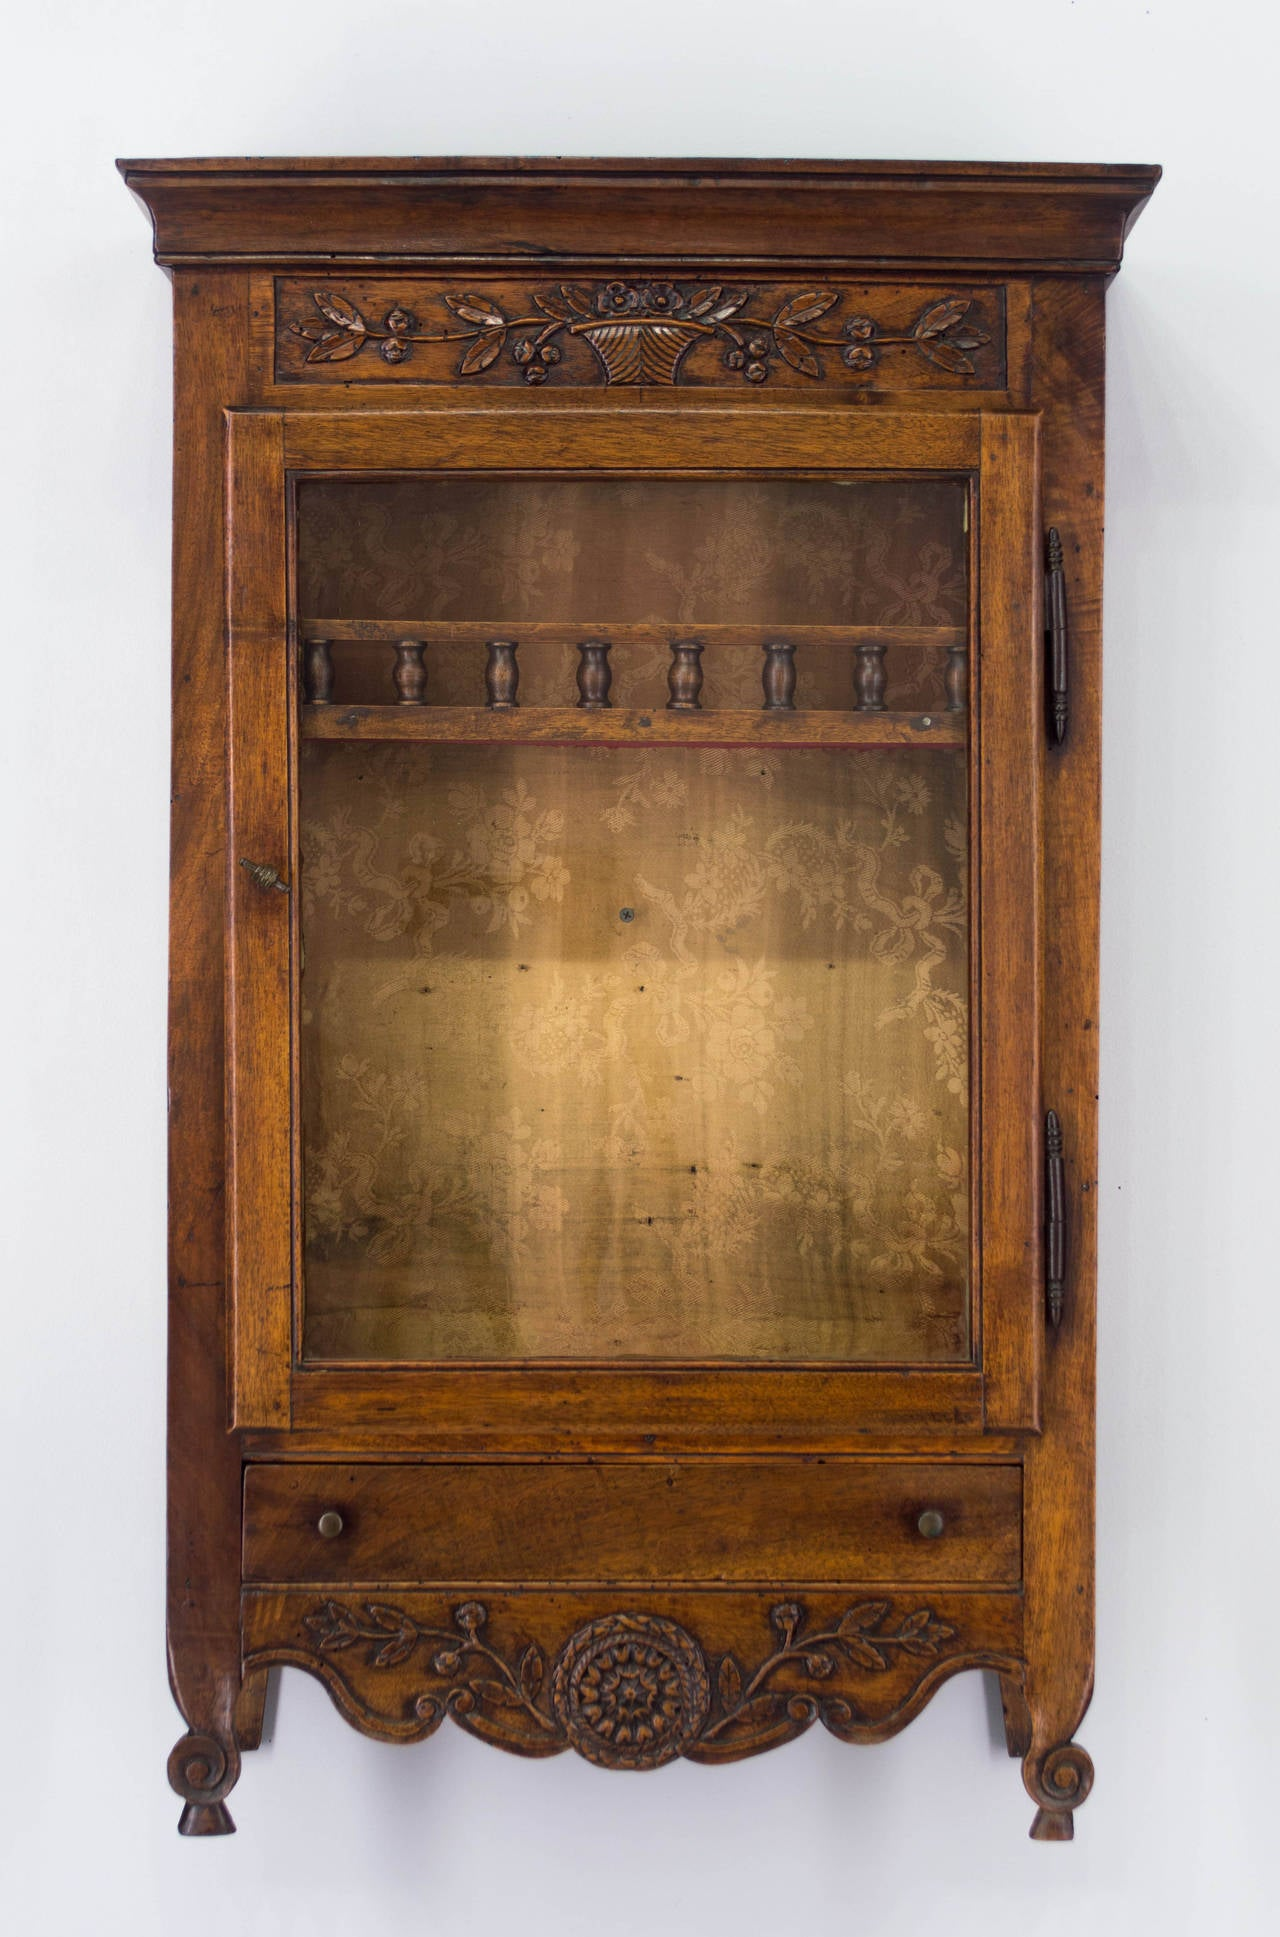 An 18th century Provençal walnut verrio, or display cabinet, with a glass door and and a dovetailed drawer. Beautiful hand-carved floral decoration. Interior is lined with fabric and has one shelf with a railing. Original brass hardware and glass